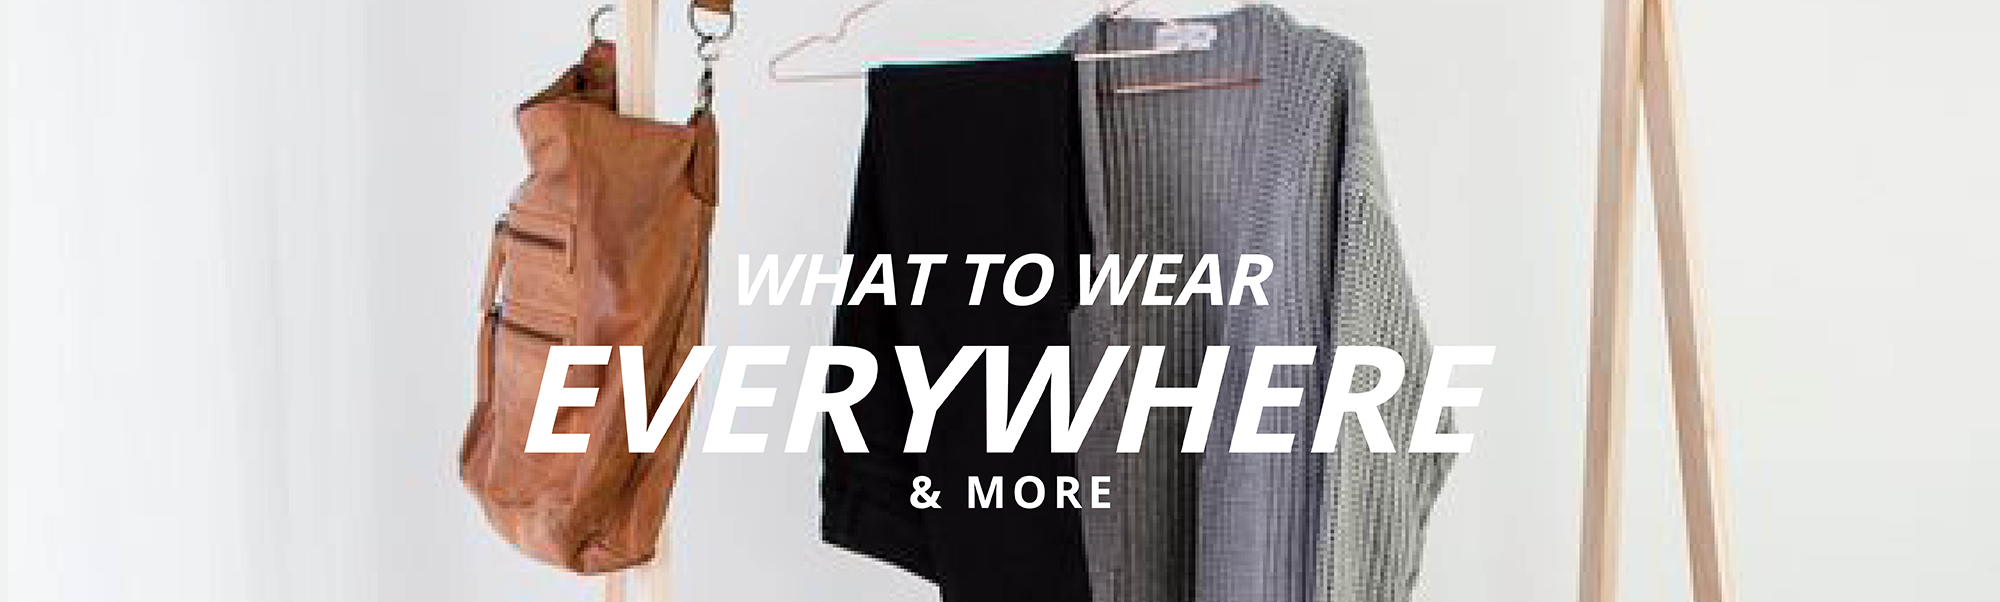 What to wear everywhere and more